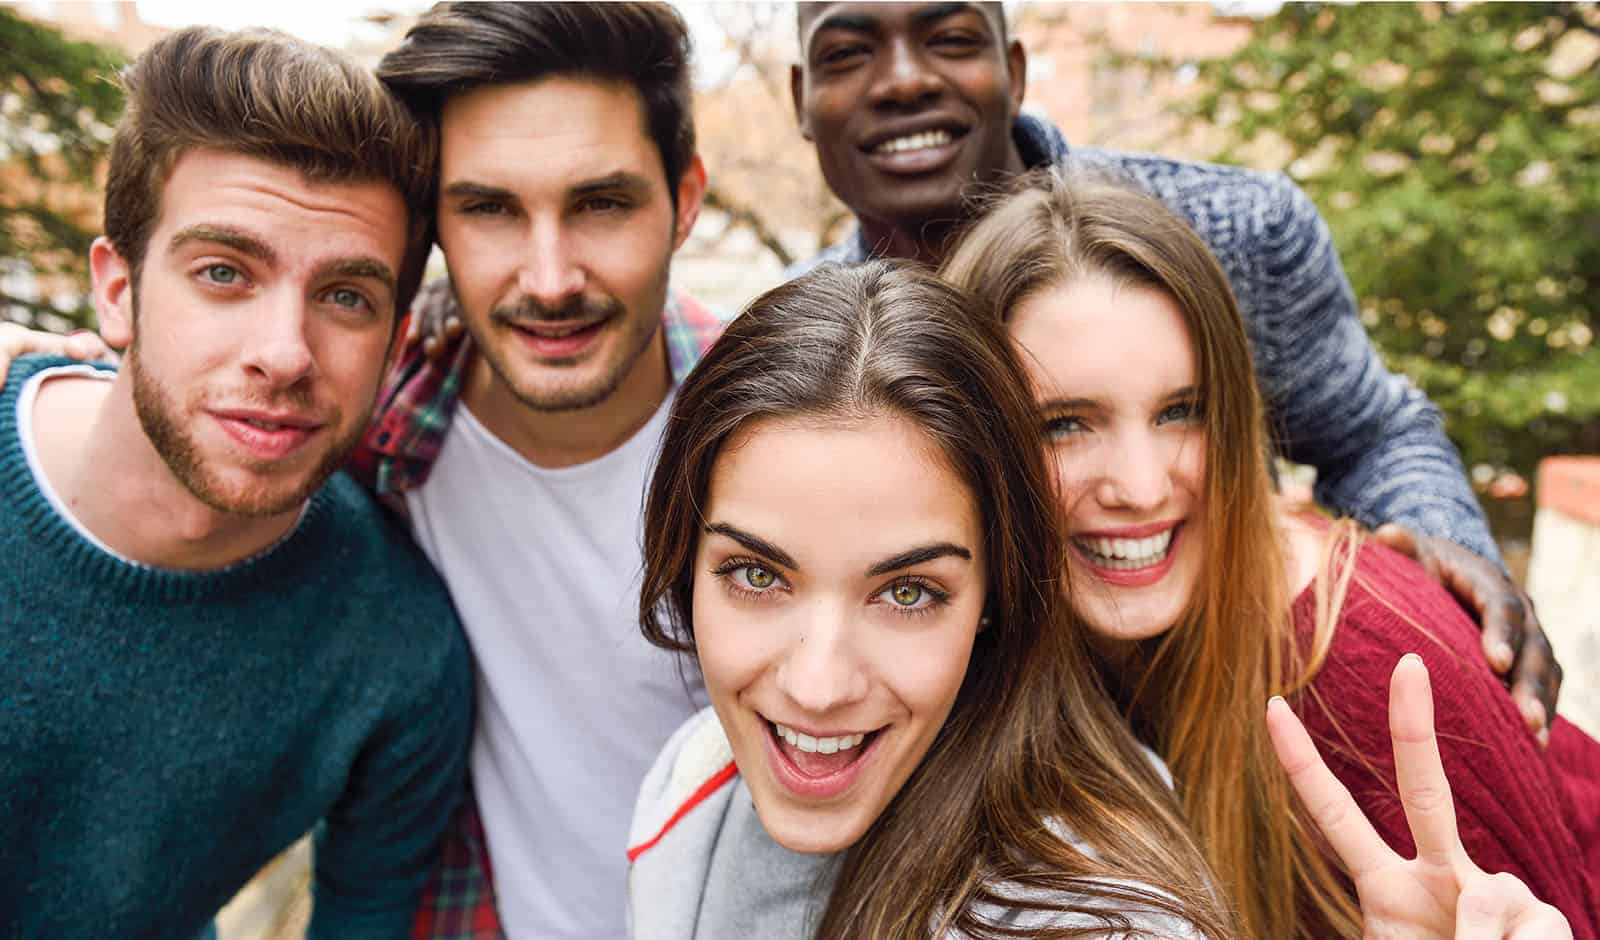 Do Young People Really Think Differently About Influence and Experiences?